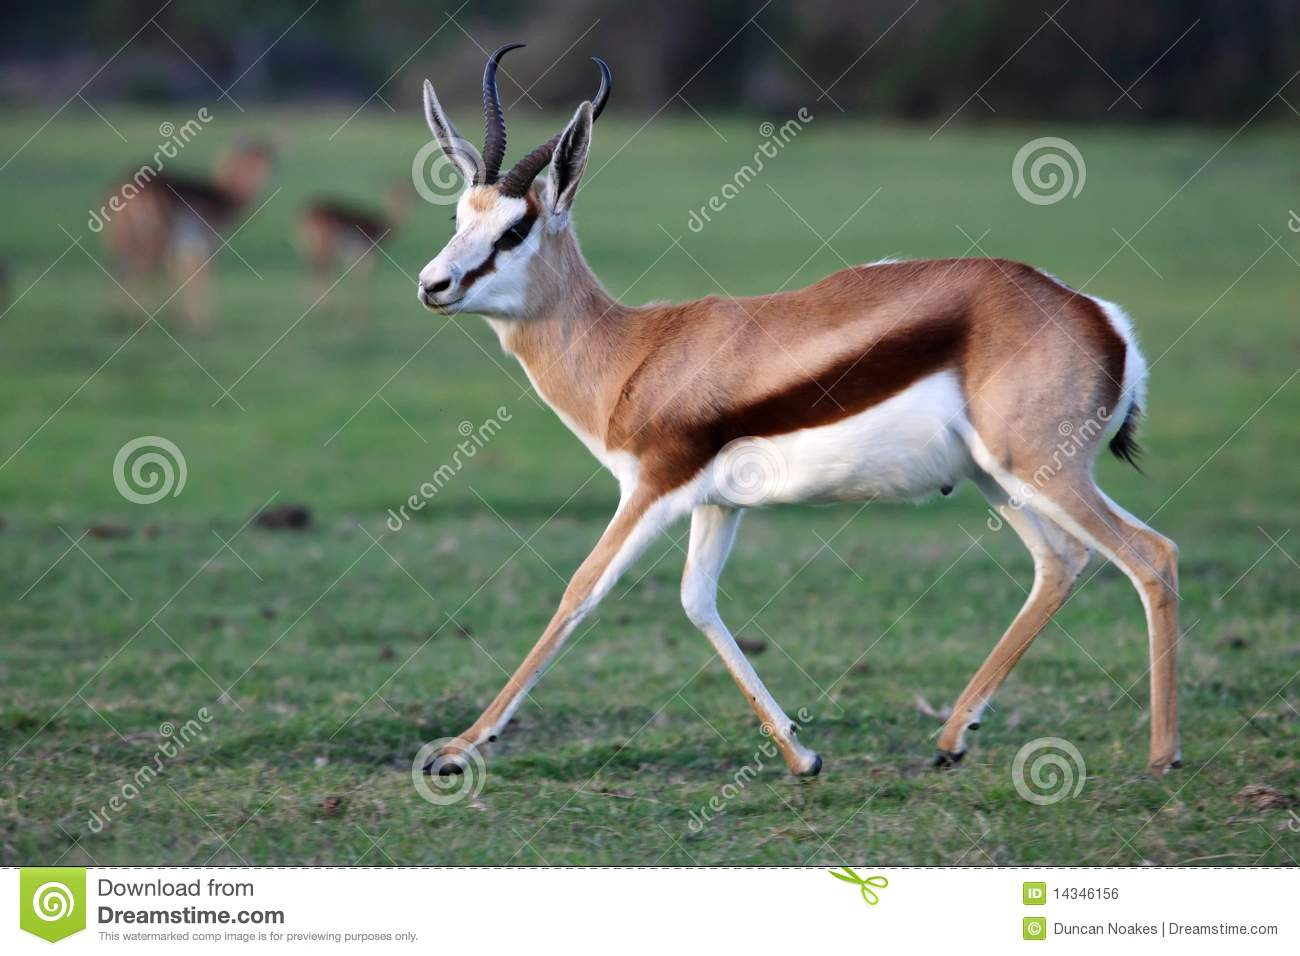 clipart springbok - photo #37